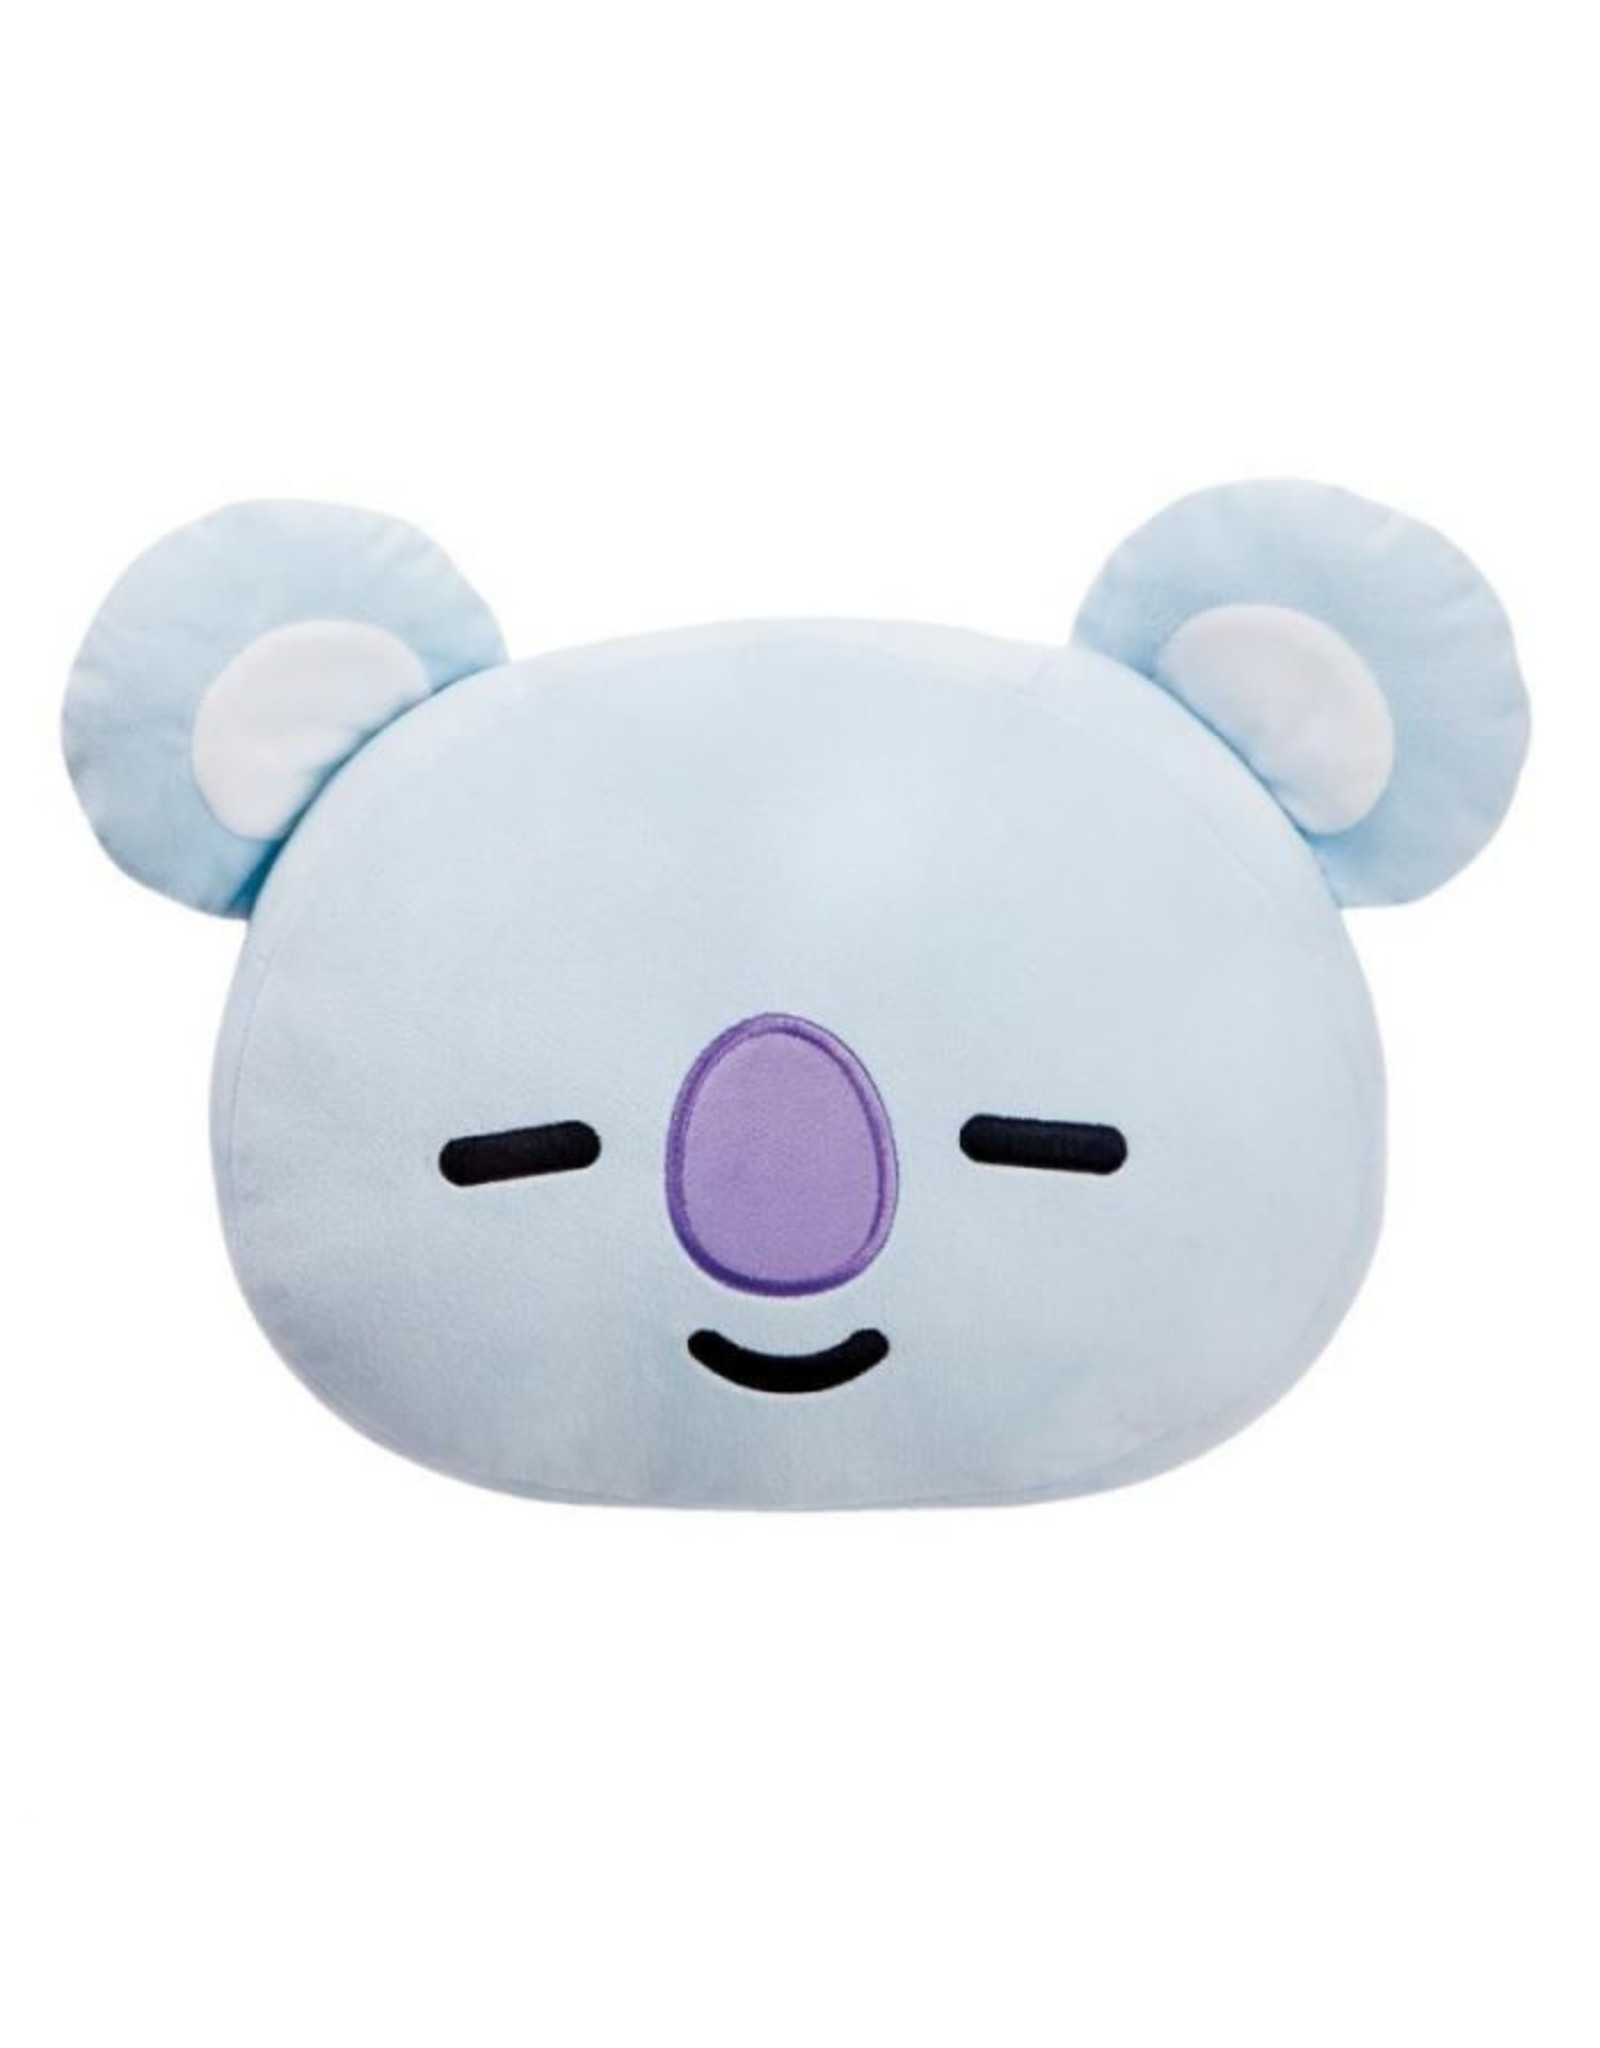 BT21 - Koya - Line Friends Pillow - 27 cm